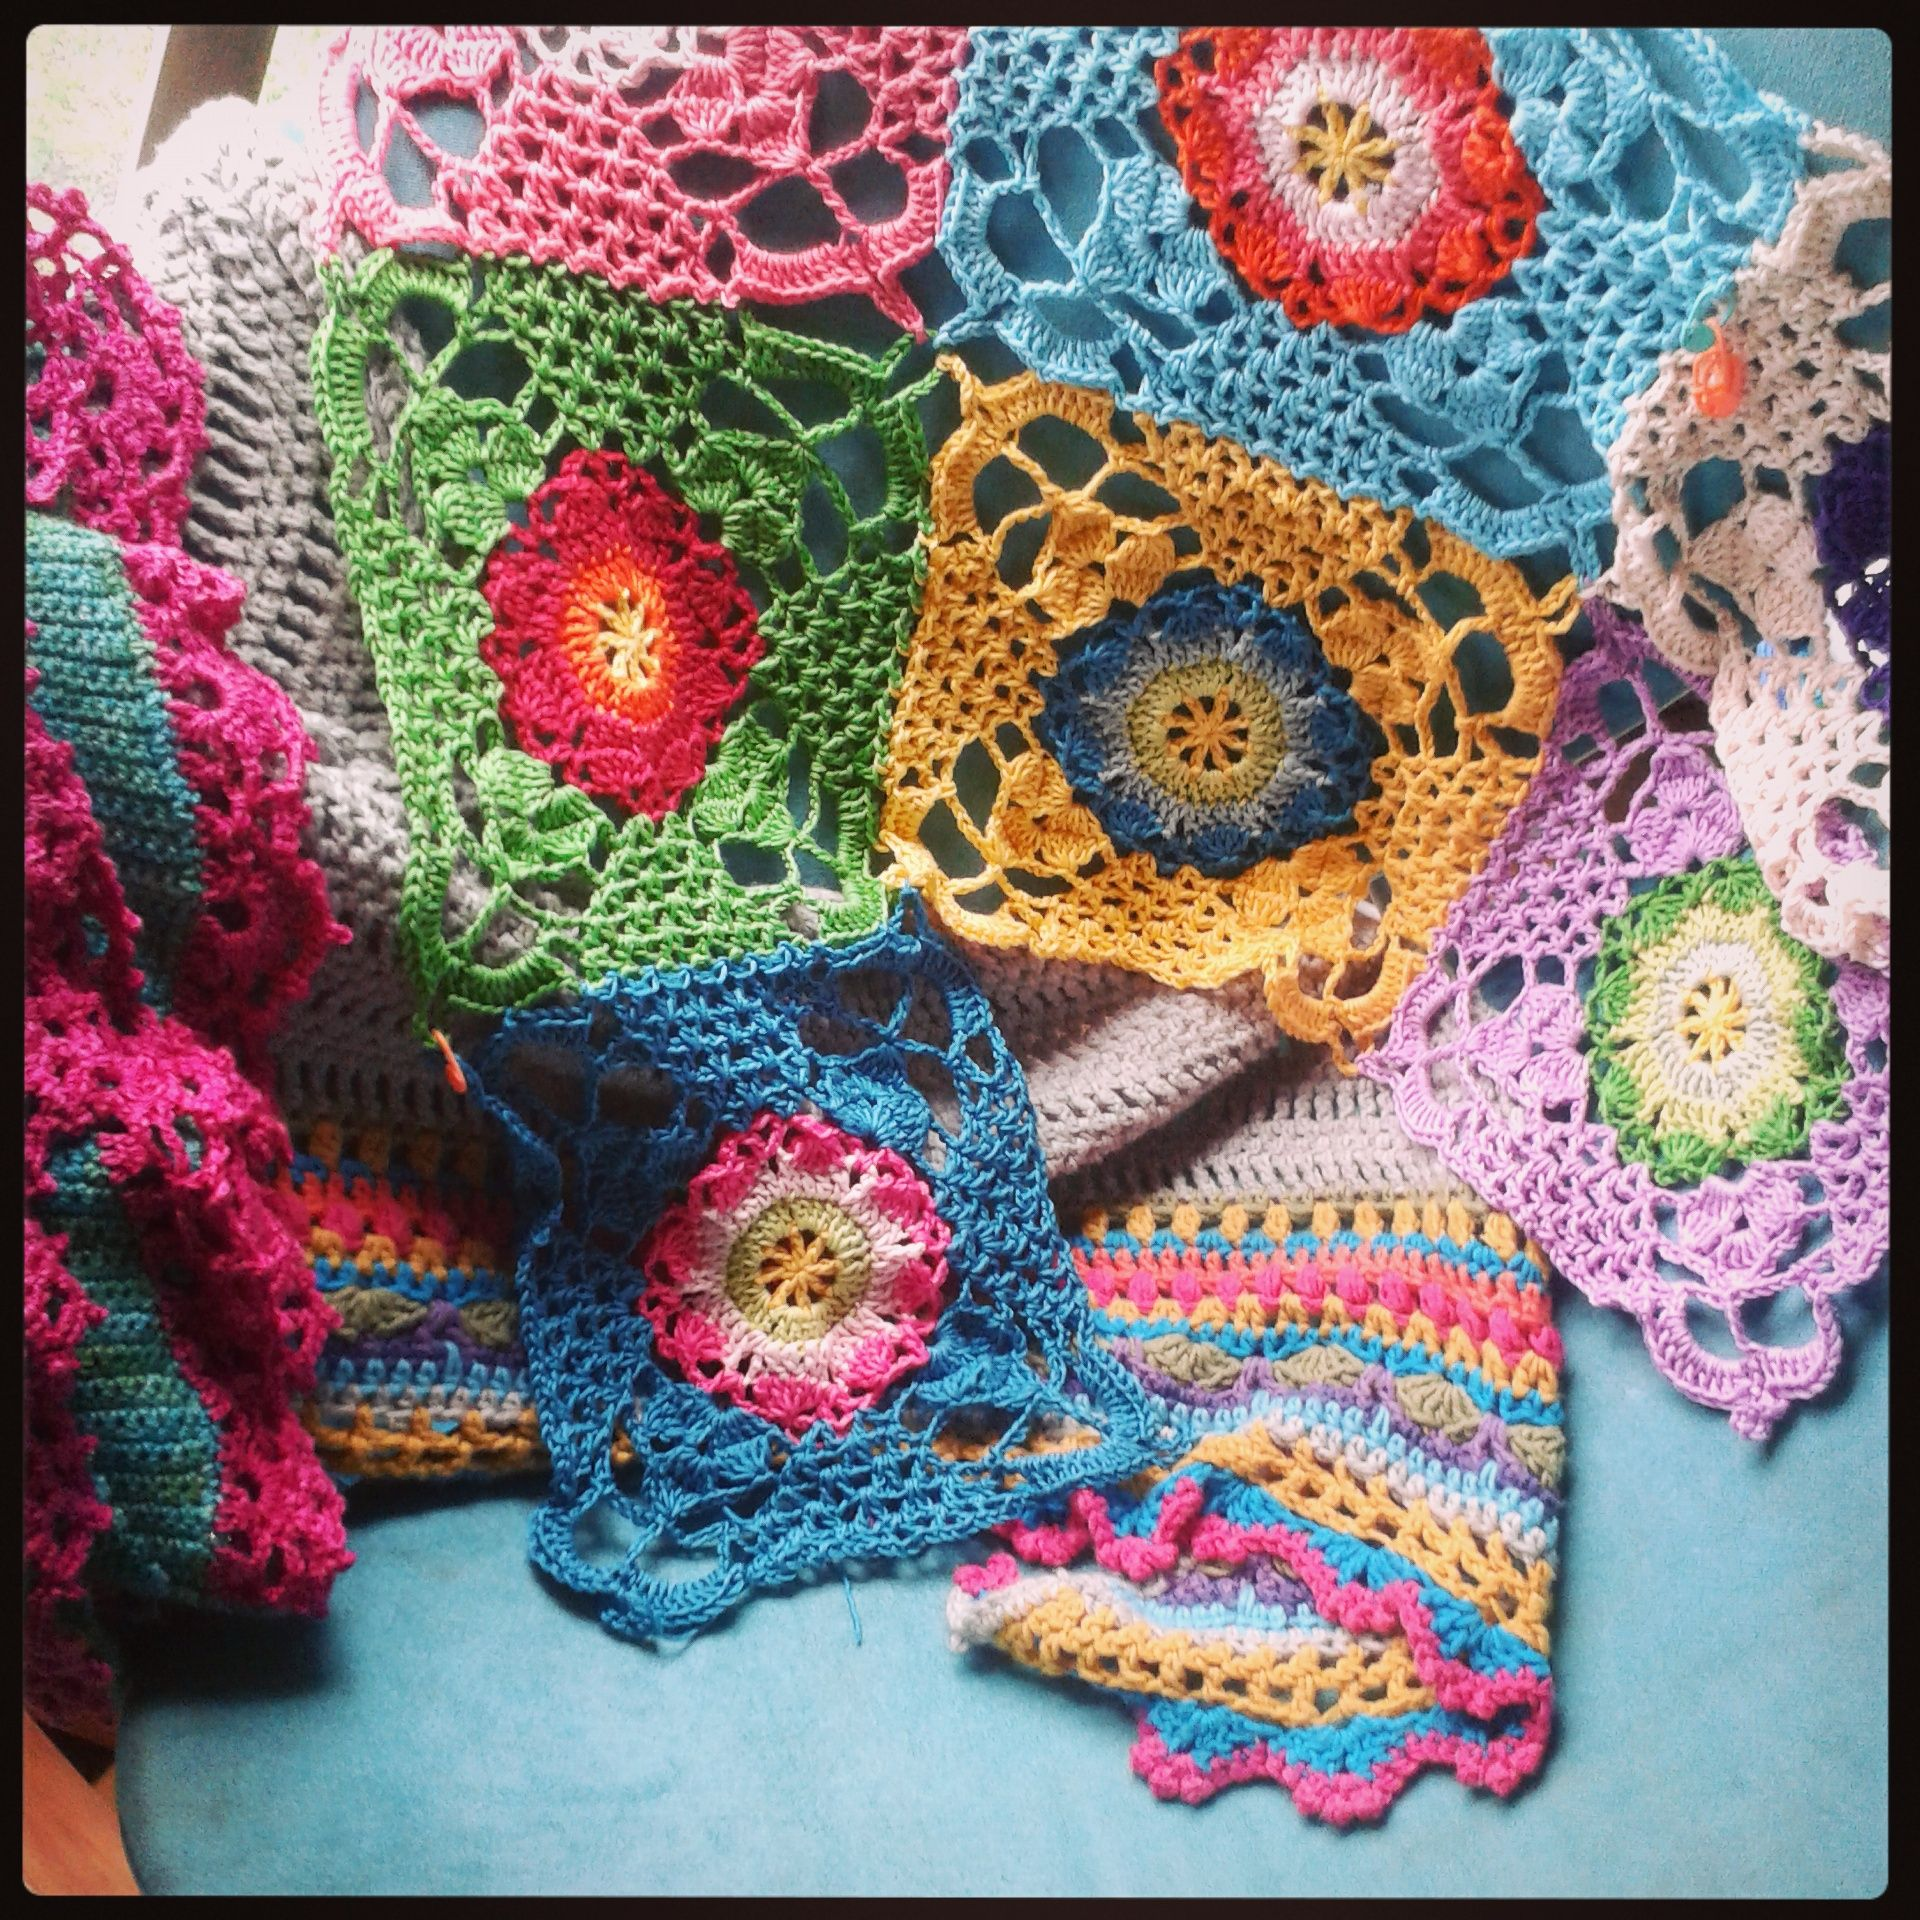 Rustic Lace Square | Blankets | Pinterest | Squares, Crochet and Blanket